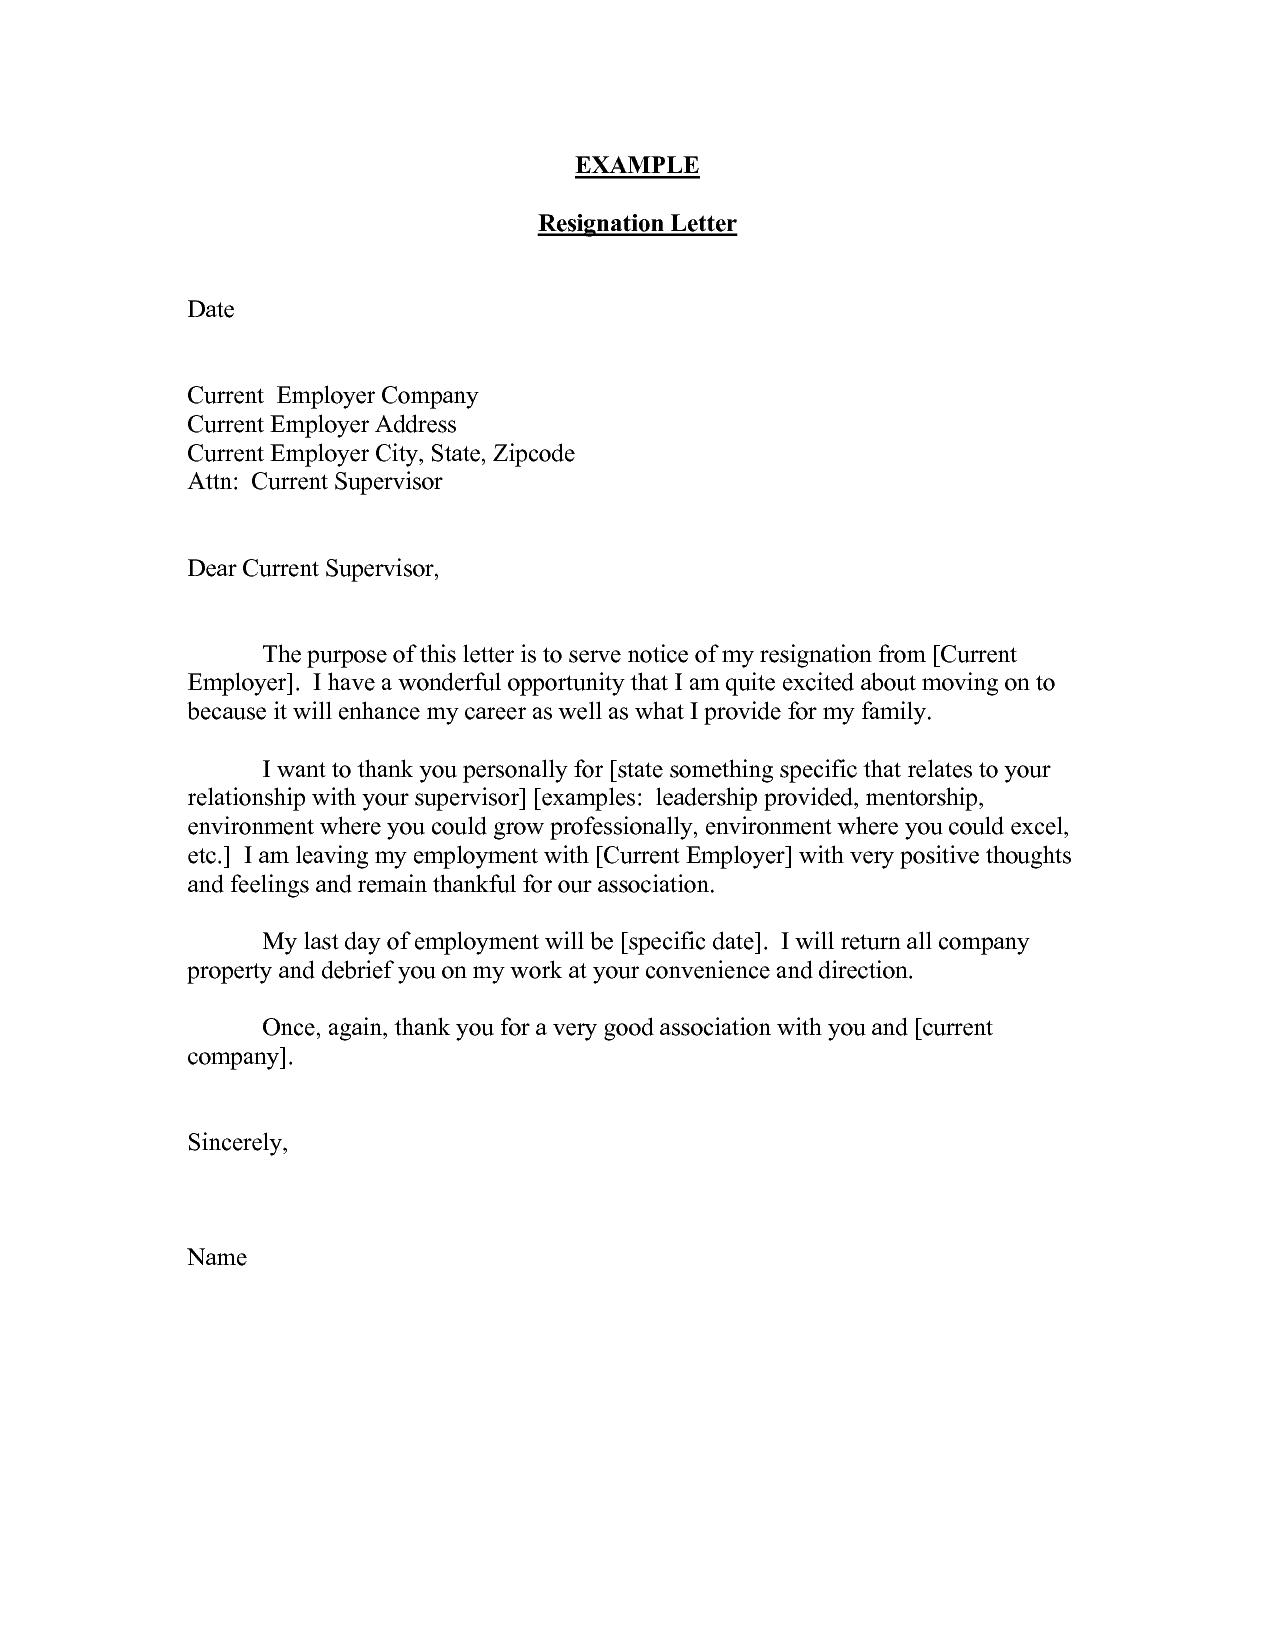 Resignation Letter Sample Doc Resume And Letter